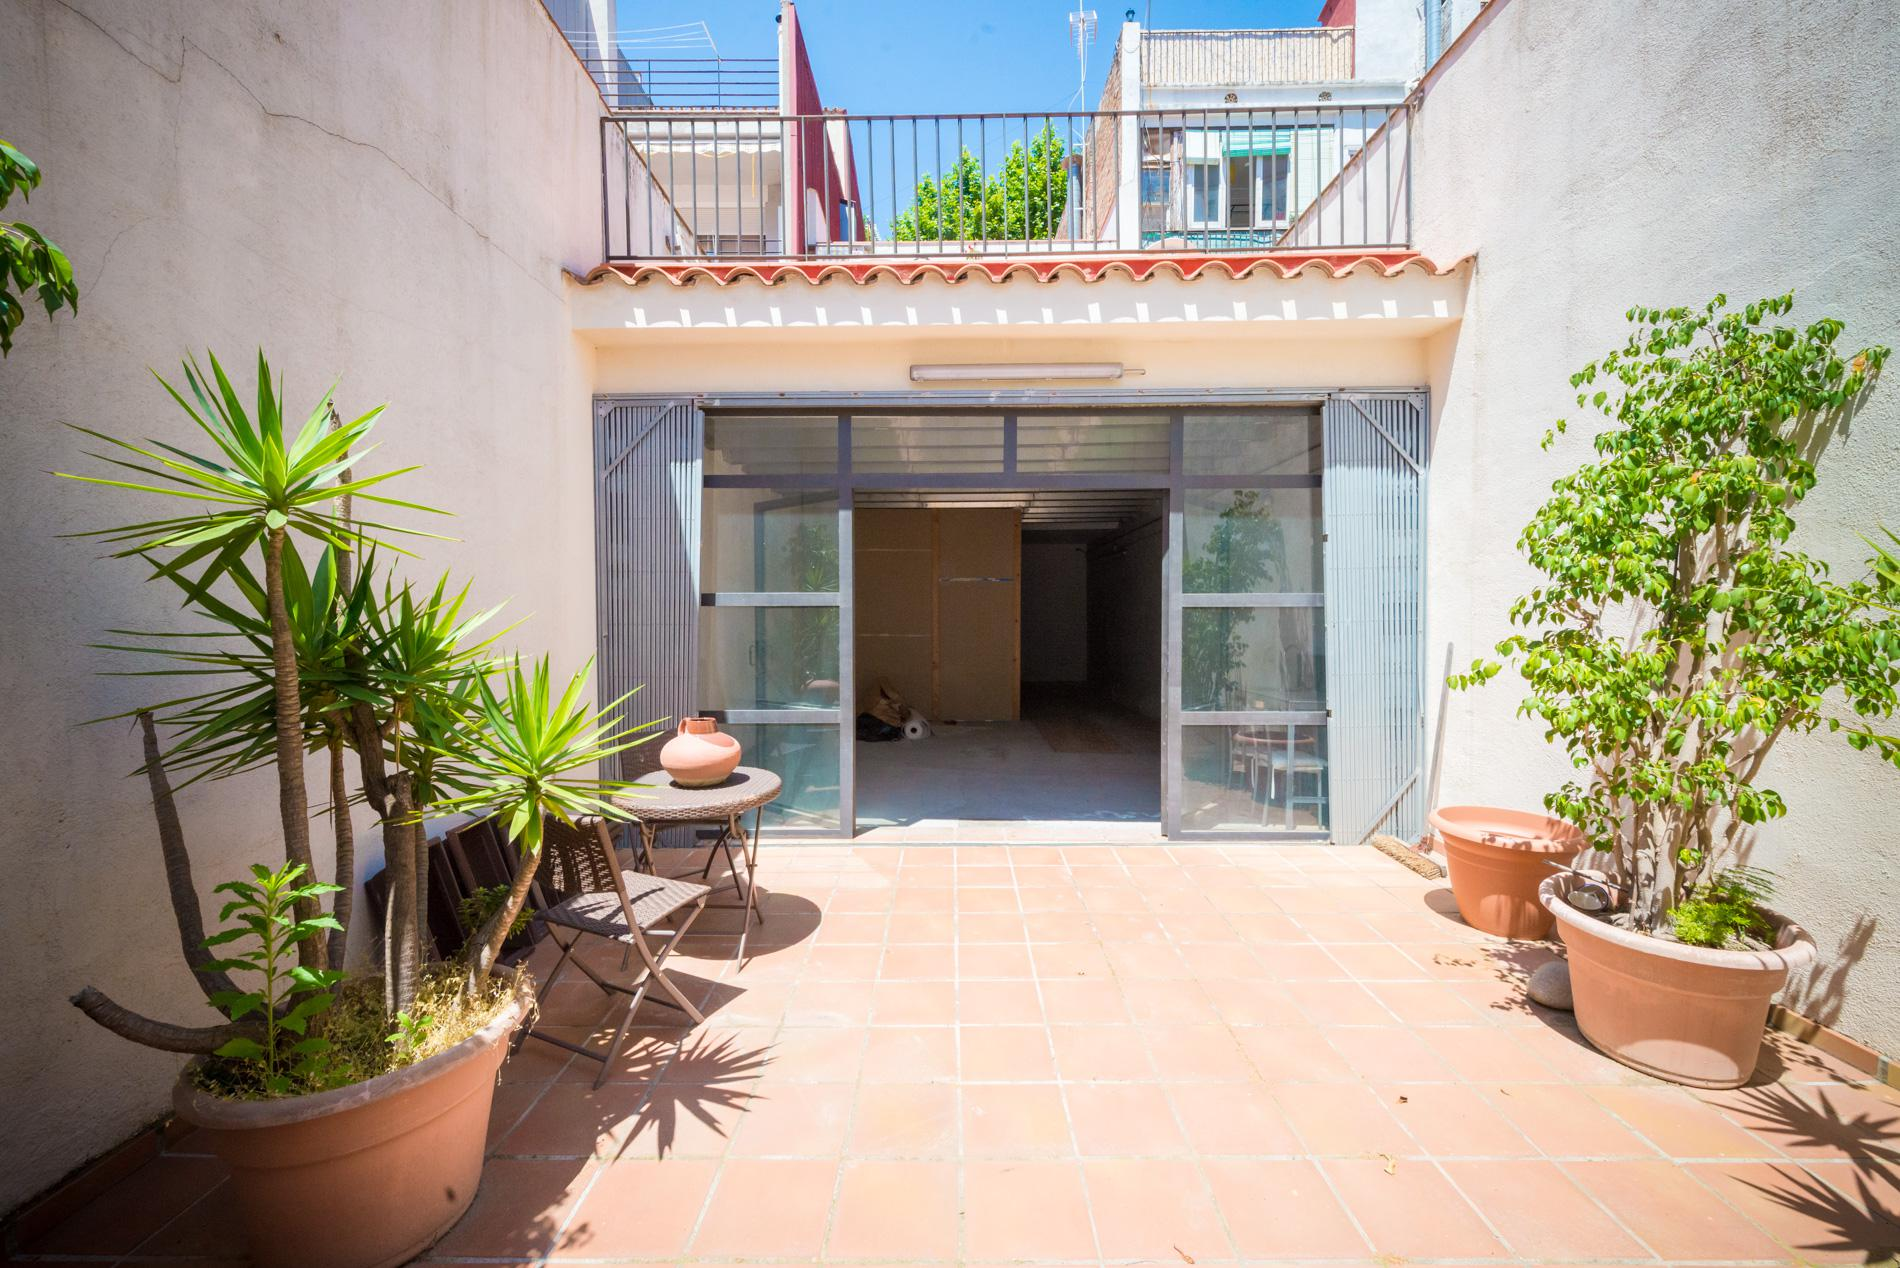 239277 Semi-detached house for sale in Sants-Montjuïc, Sants 1